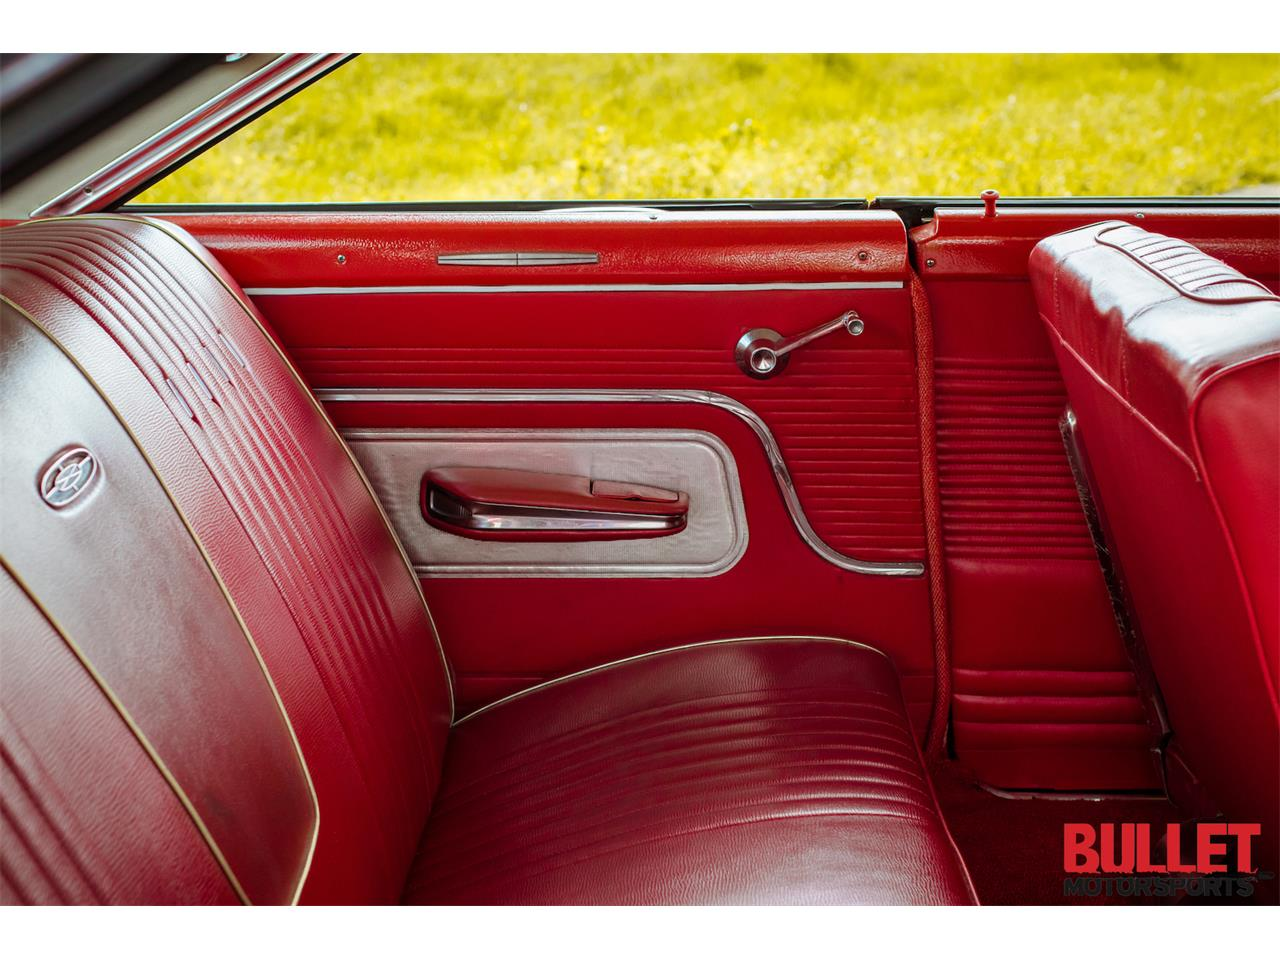 Large Picture of 1963 Ford Galaxie located in Fort Lauderdale Florida - $17,950.00 - M69S